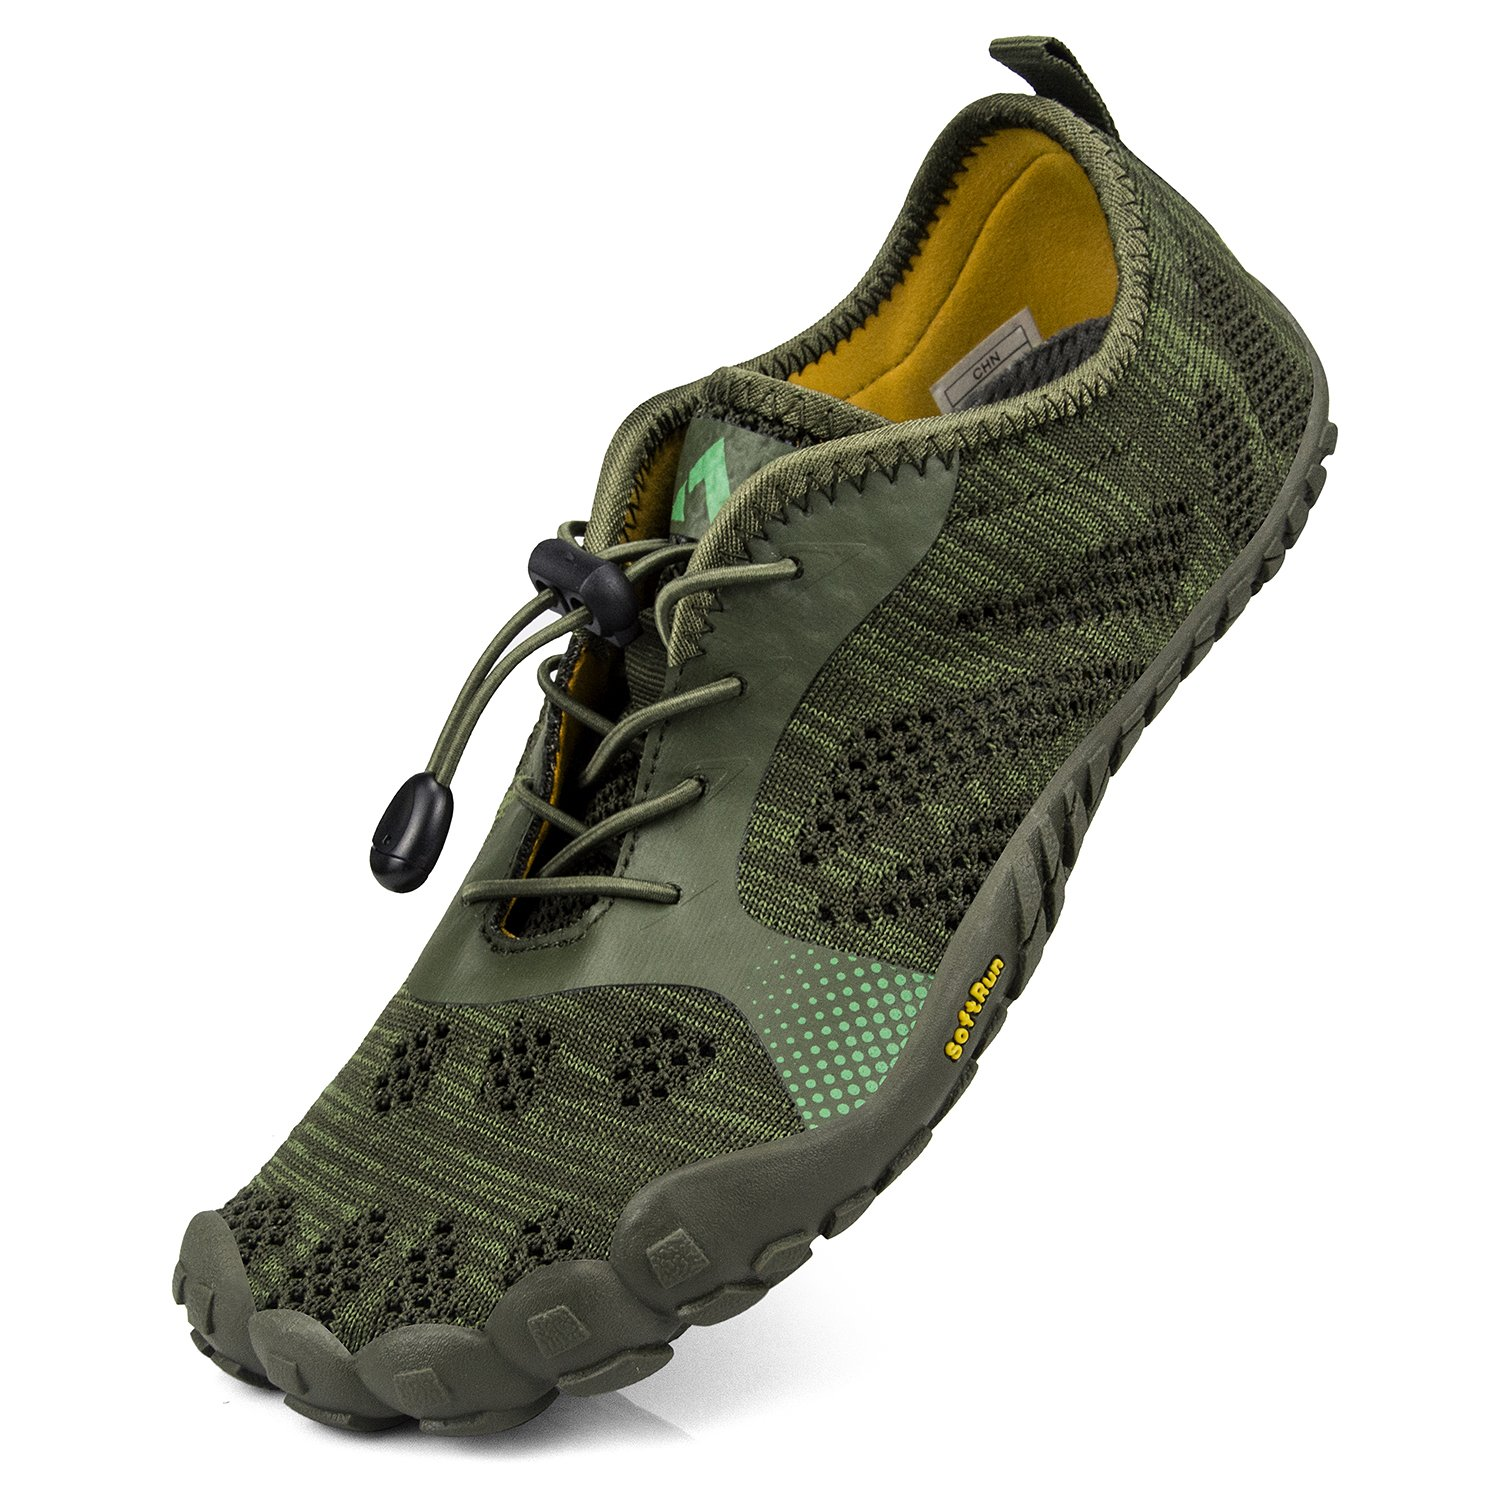 QANSI Womens Hiking Shoes Barefoot Water Shoes Mesh Breathable Outdoor Gym Athletics Running Walking Sports Shoes B07F7P2JKD 10 M US Green